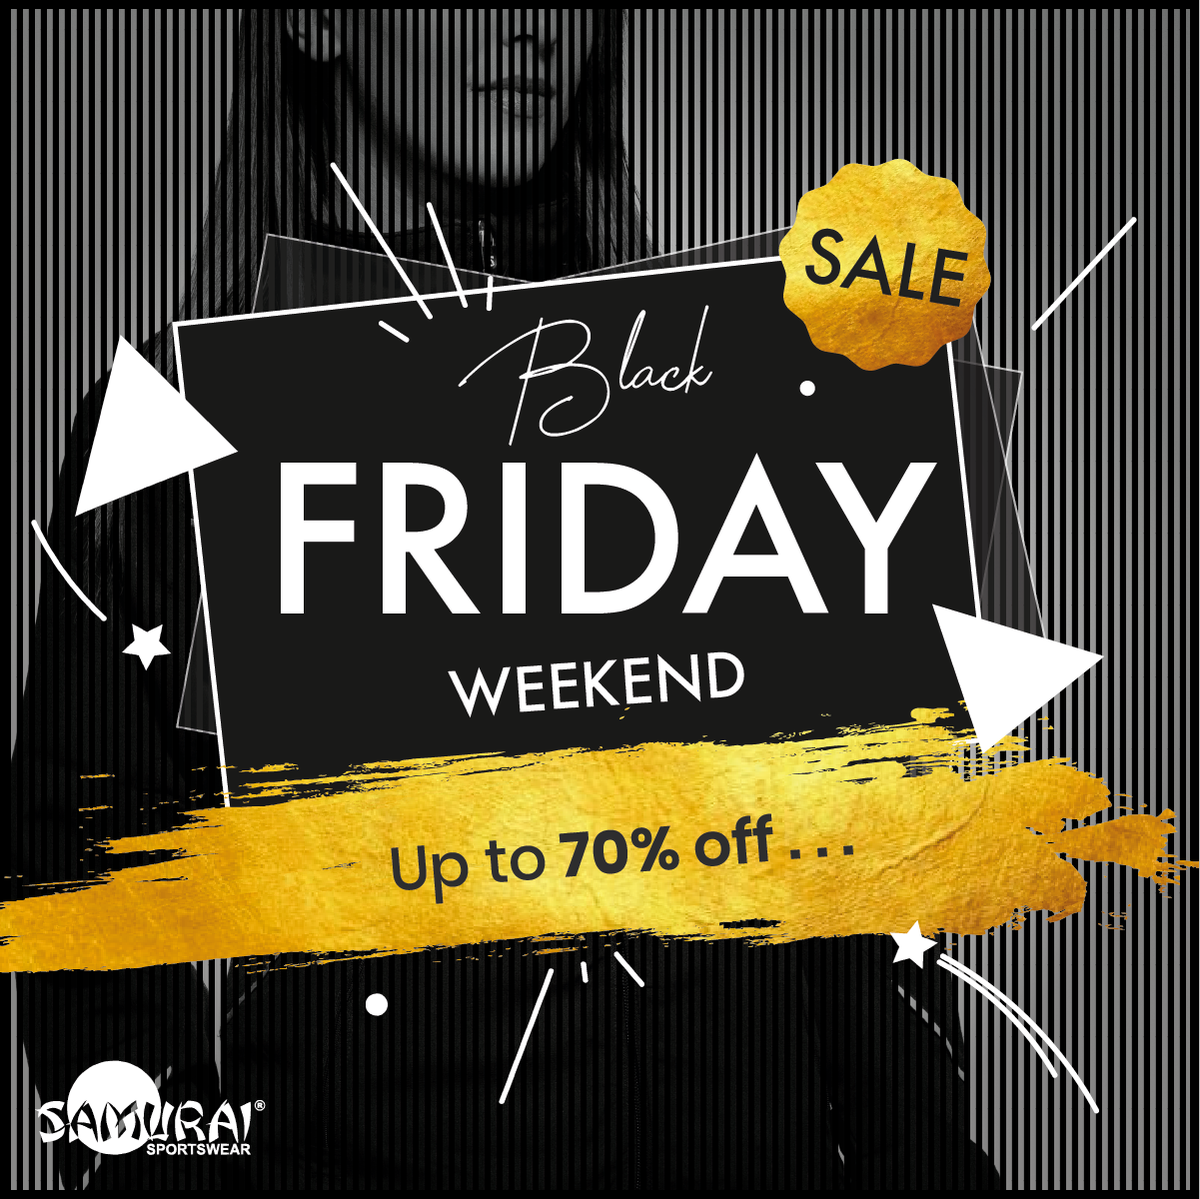 test Twitter Media - Jackets, T-shirts, balls, hoodies, trackpants, protective equipment - all in our Black Friday Weekender. Up to 70% off! https://t.co/ov5JGtnWZA